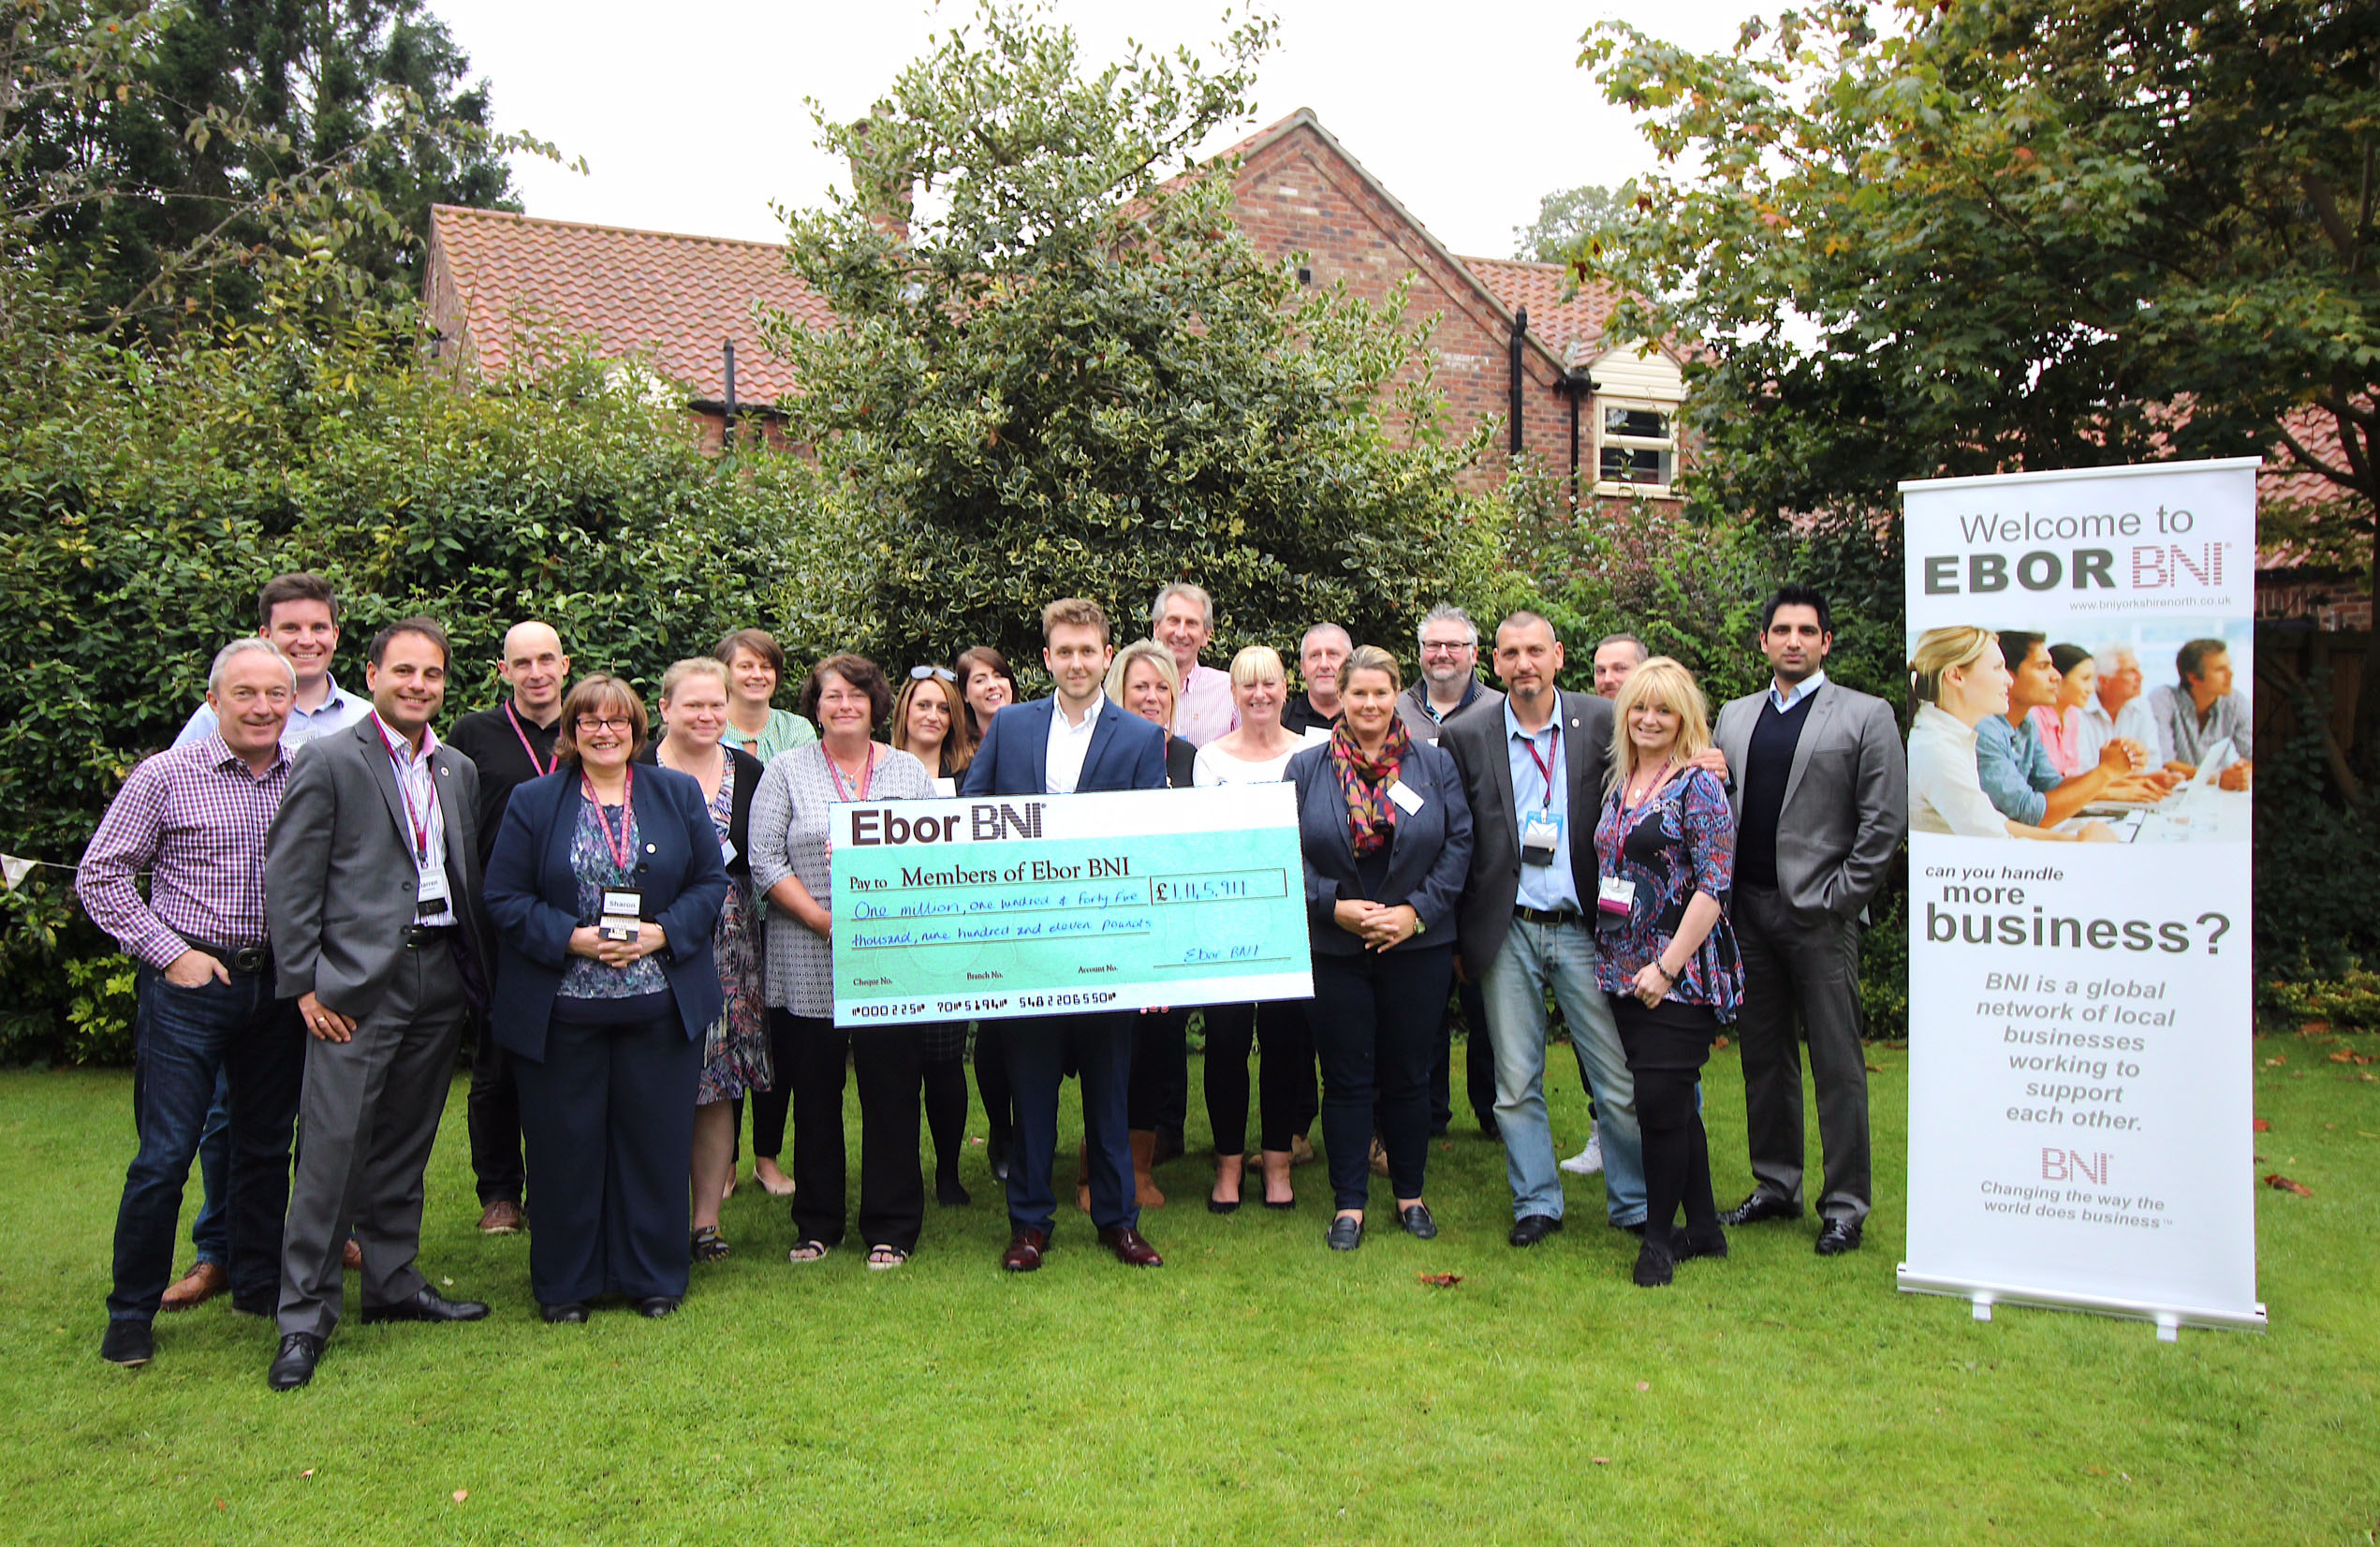 Ebor Members Celebrate 1 Million Pounds of Business